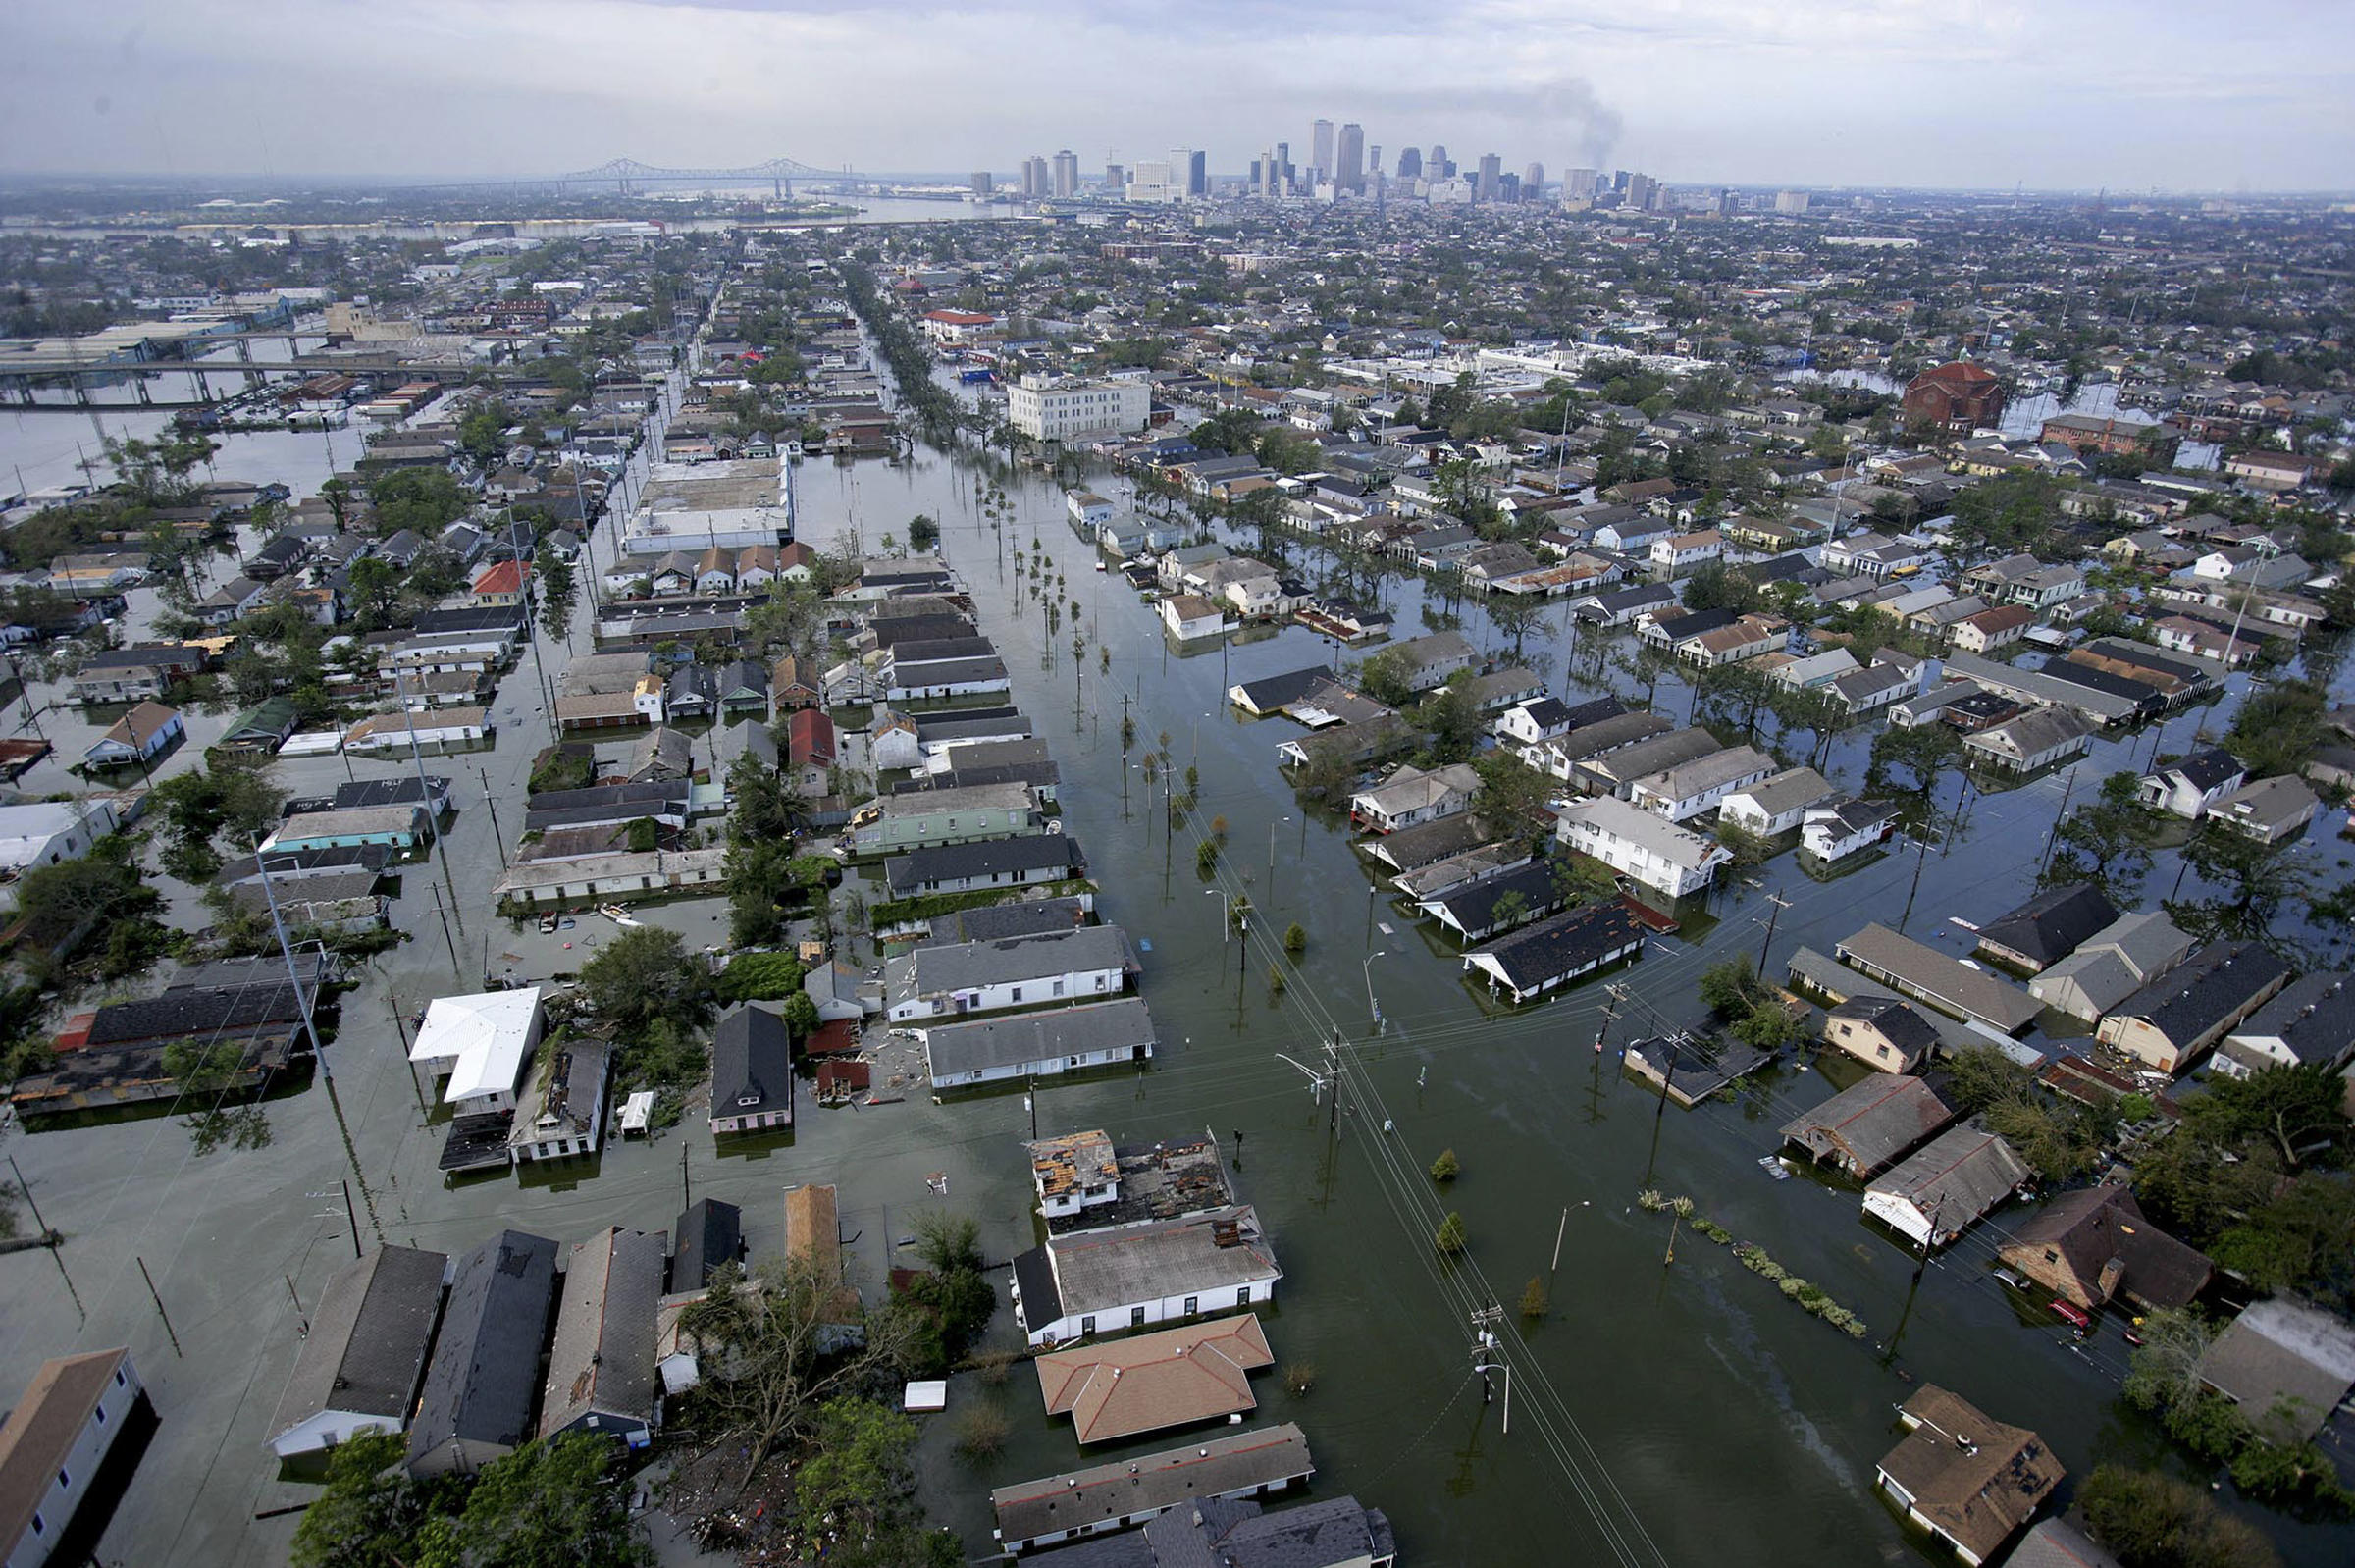 Floodwaters-from-Hurricane-Katrina-cover-streets